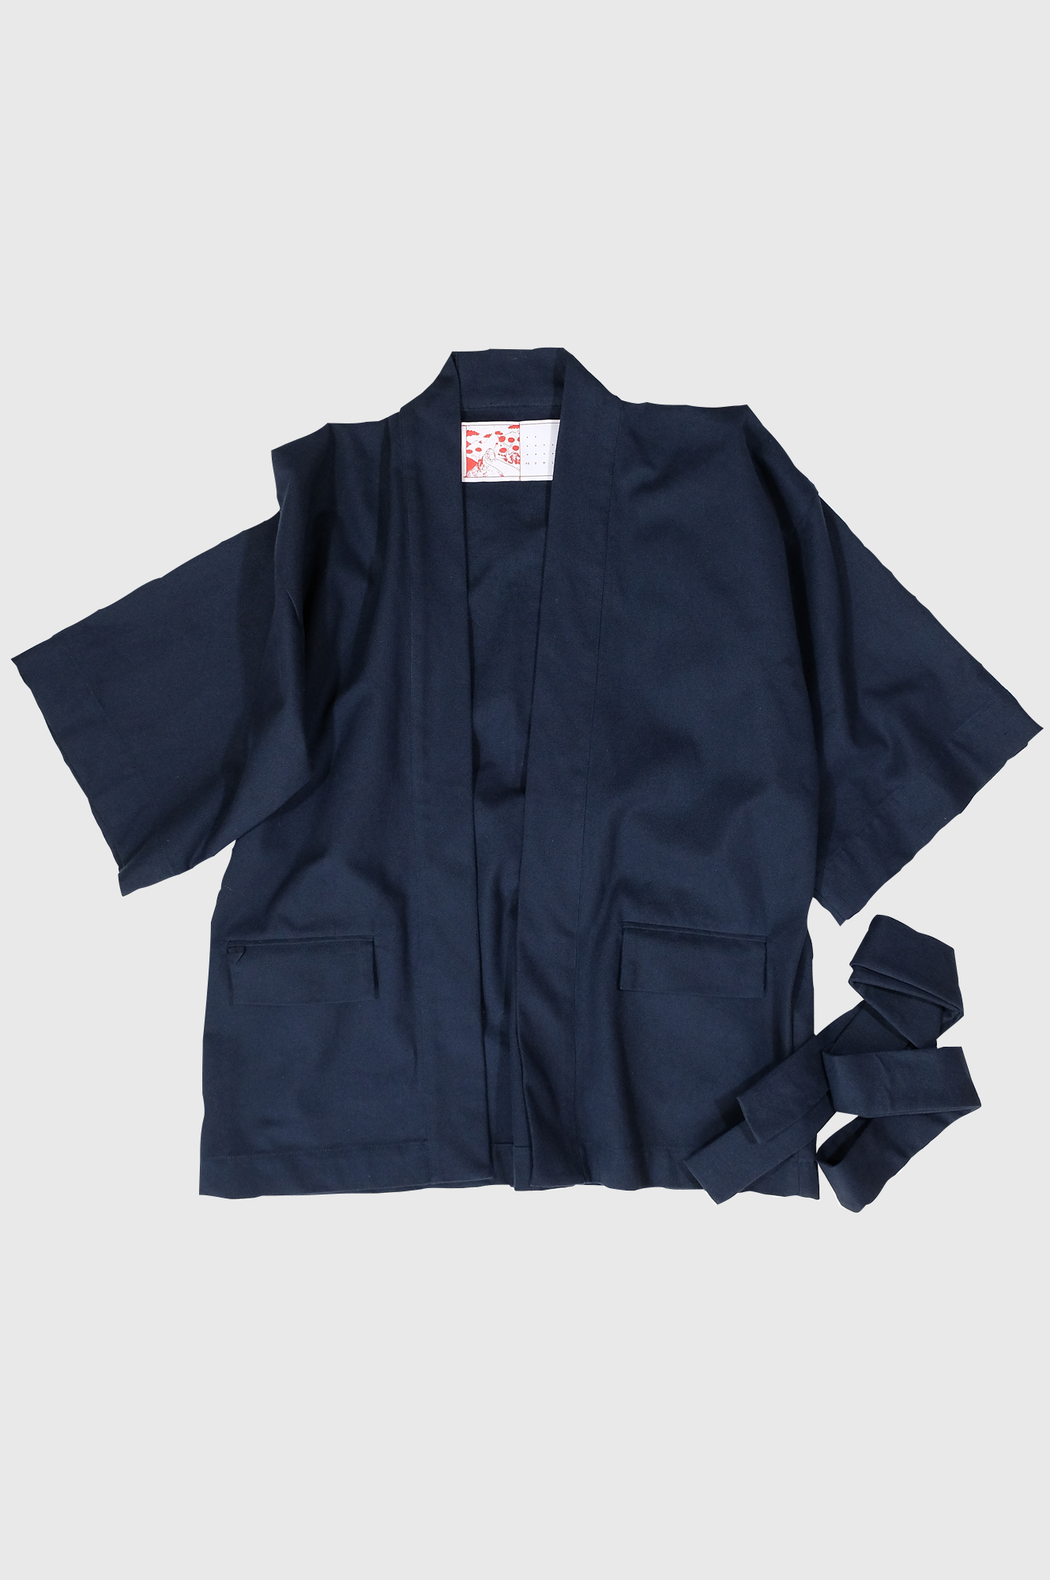 LF Haori Jacket in Maastricht Blue